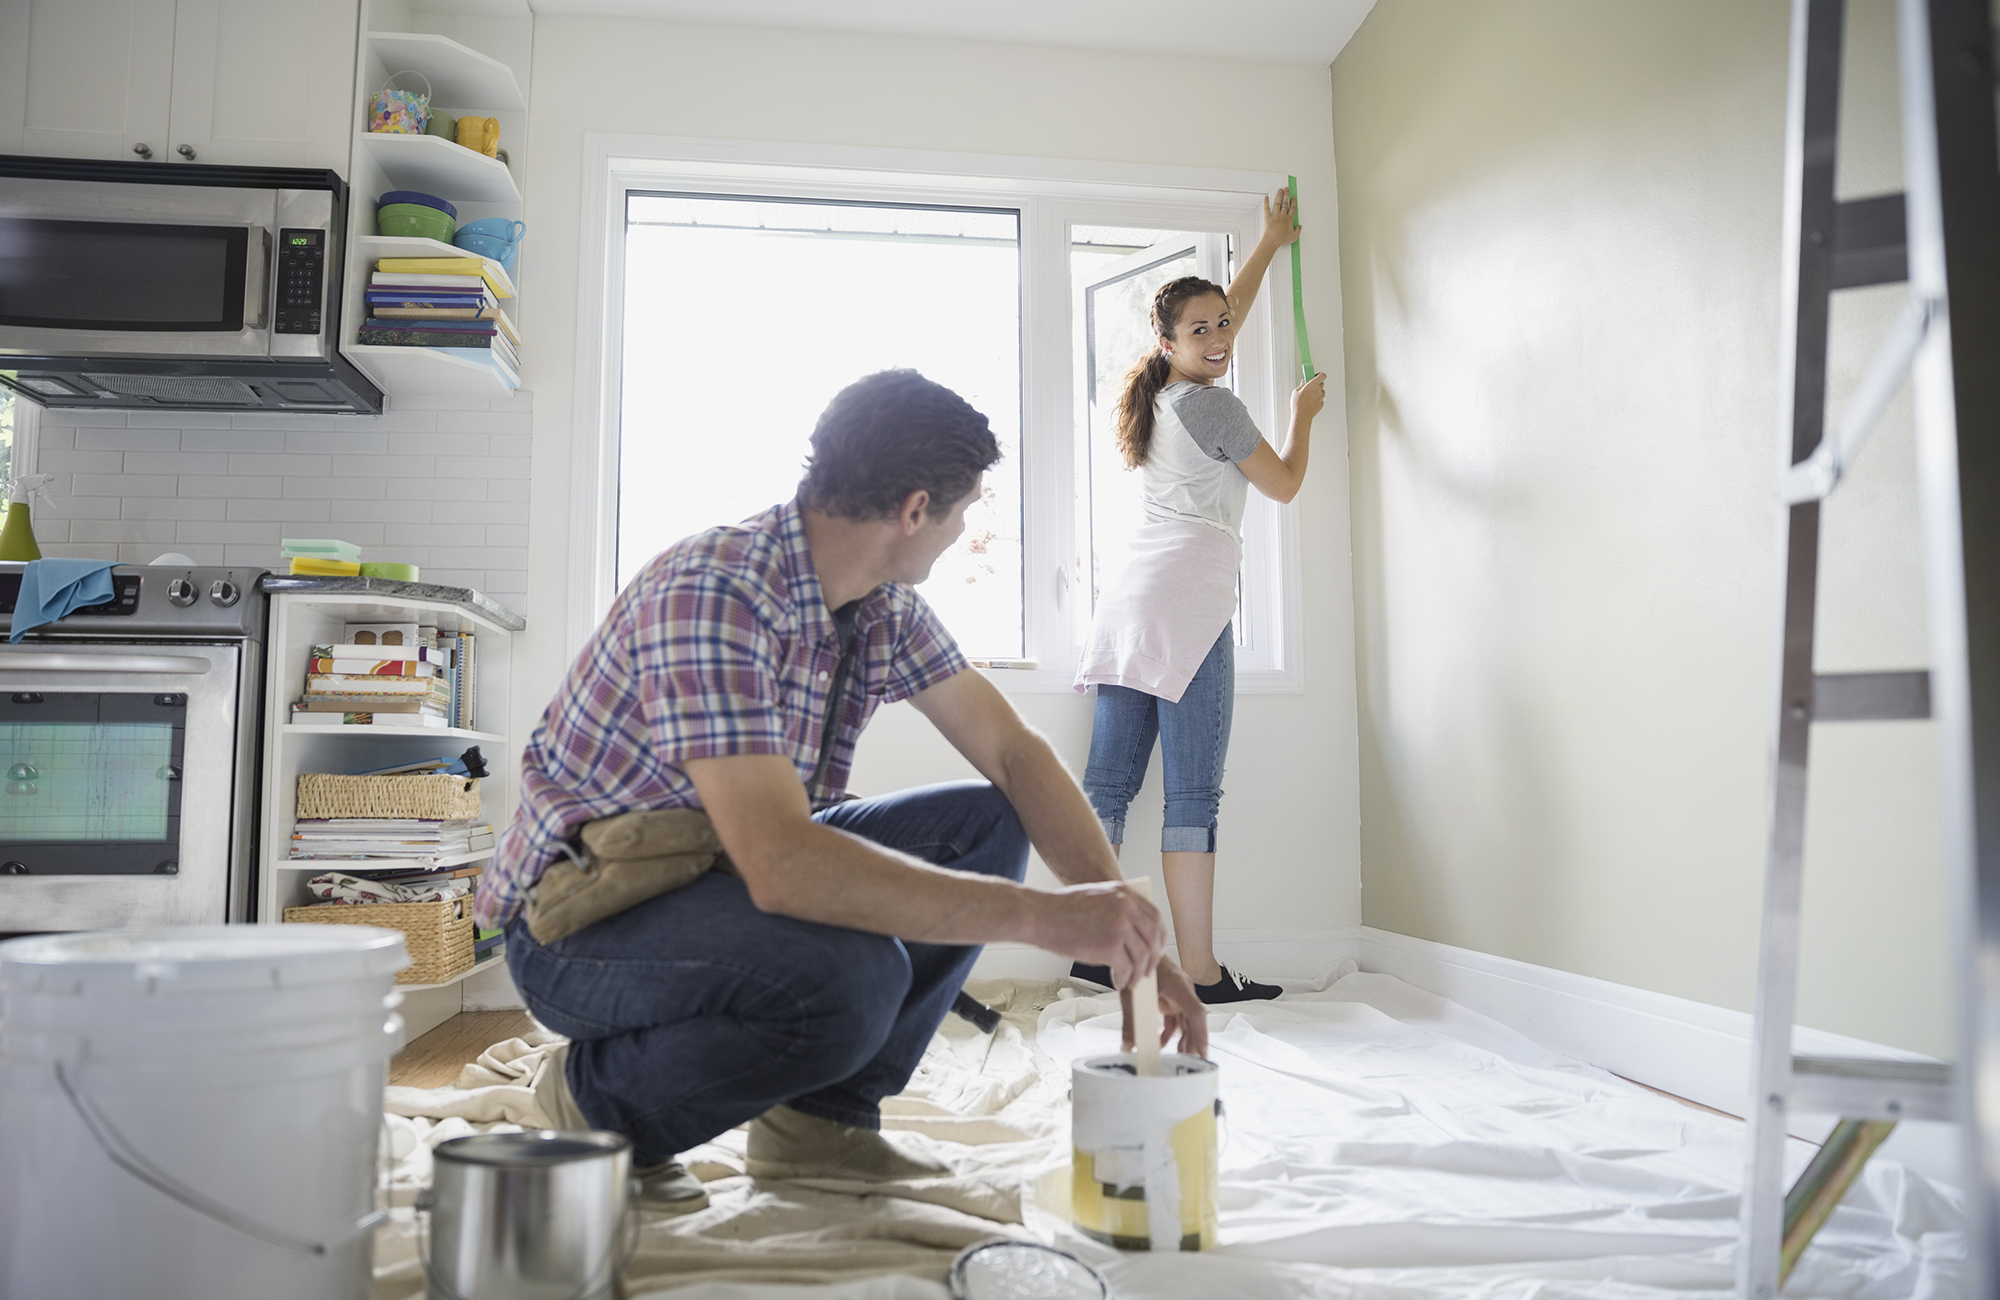 Surprising Health Benefits of Keeping Your Home Clean Time To Time